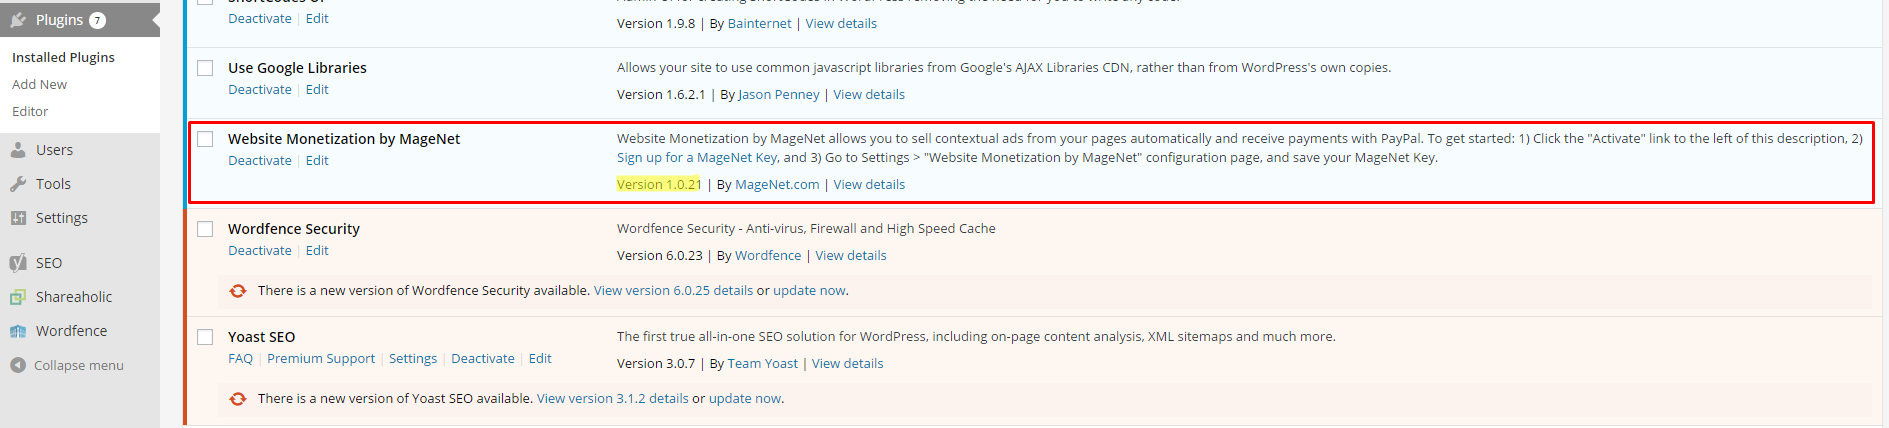 WordPress Monetization Plugin